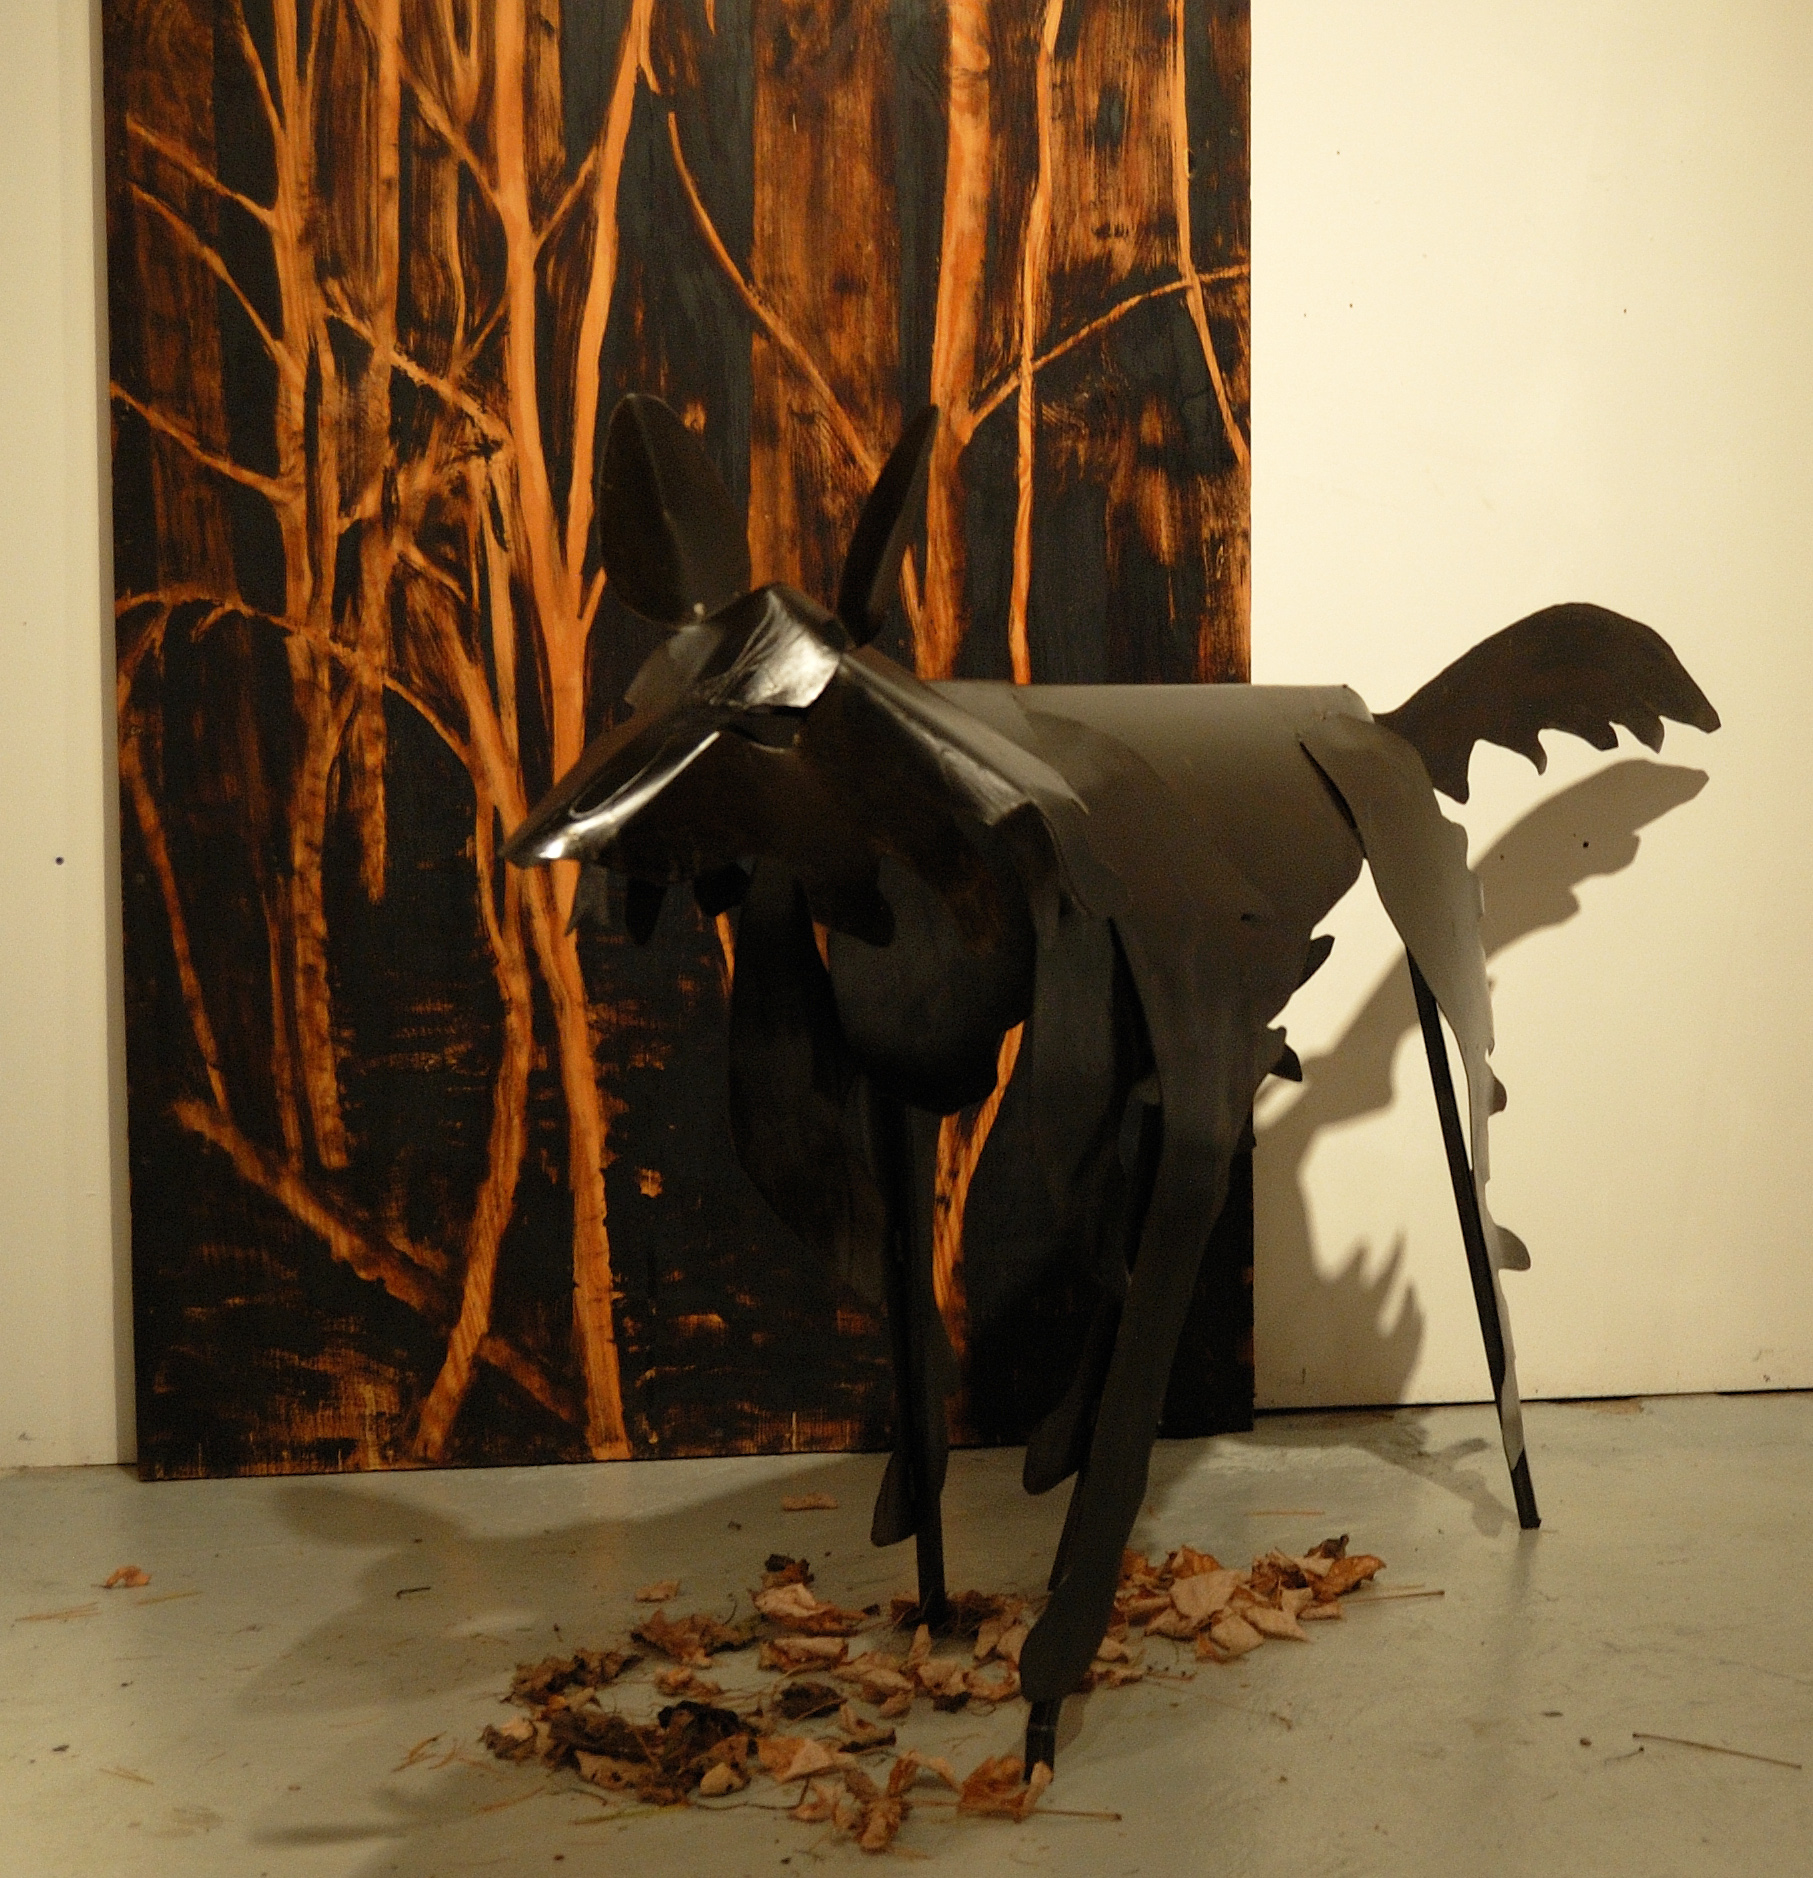 """Living Room"" was a one-person show at Gallery 13, 811 LaSalle St., Minneapolis, MN.  The animals are life-size, Corten steel, the panels, both freestanding  and wall-hung, are each 4' x 8' plywood, painted in asphaltum. This is Grimm's Wolf in steel."